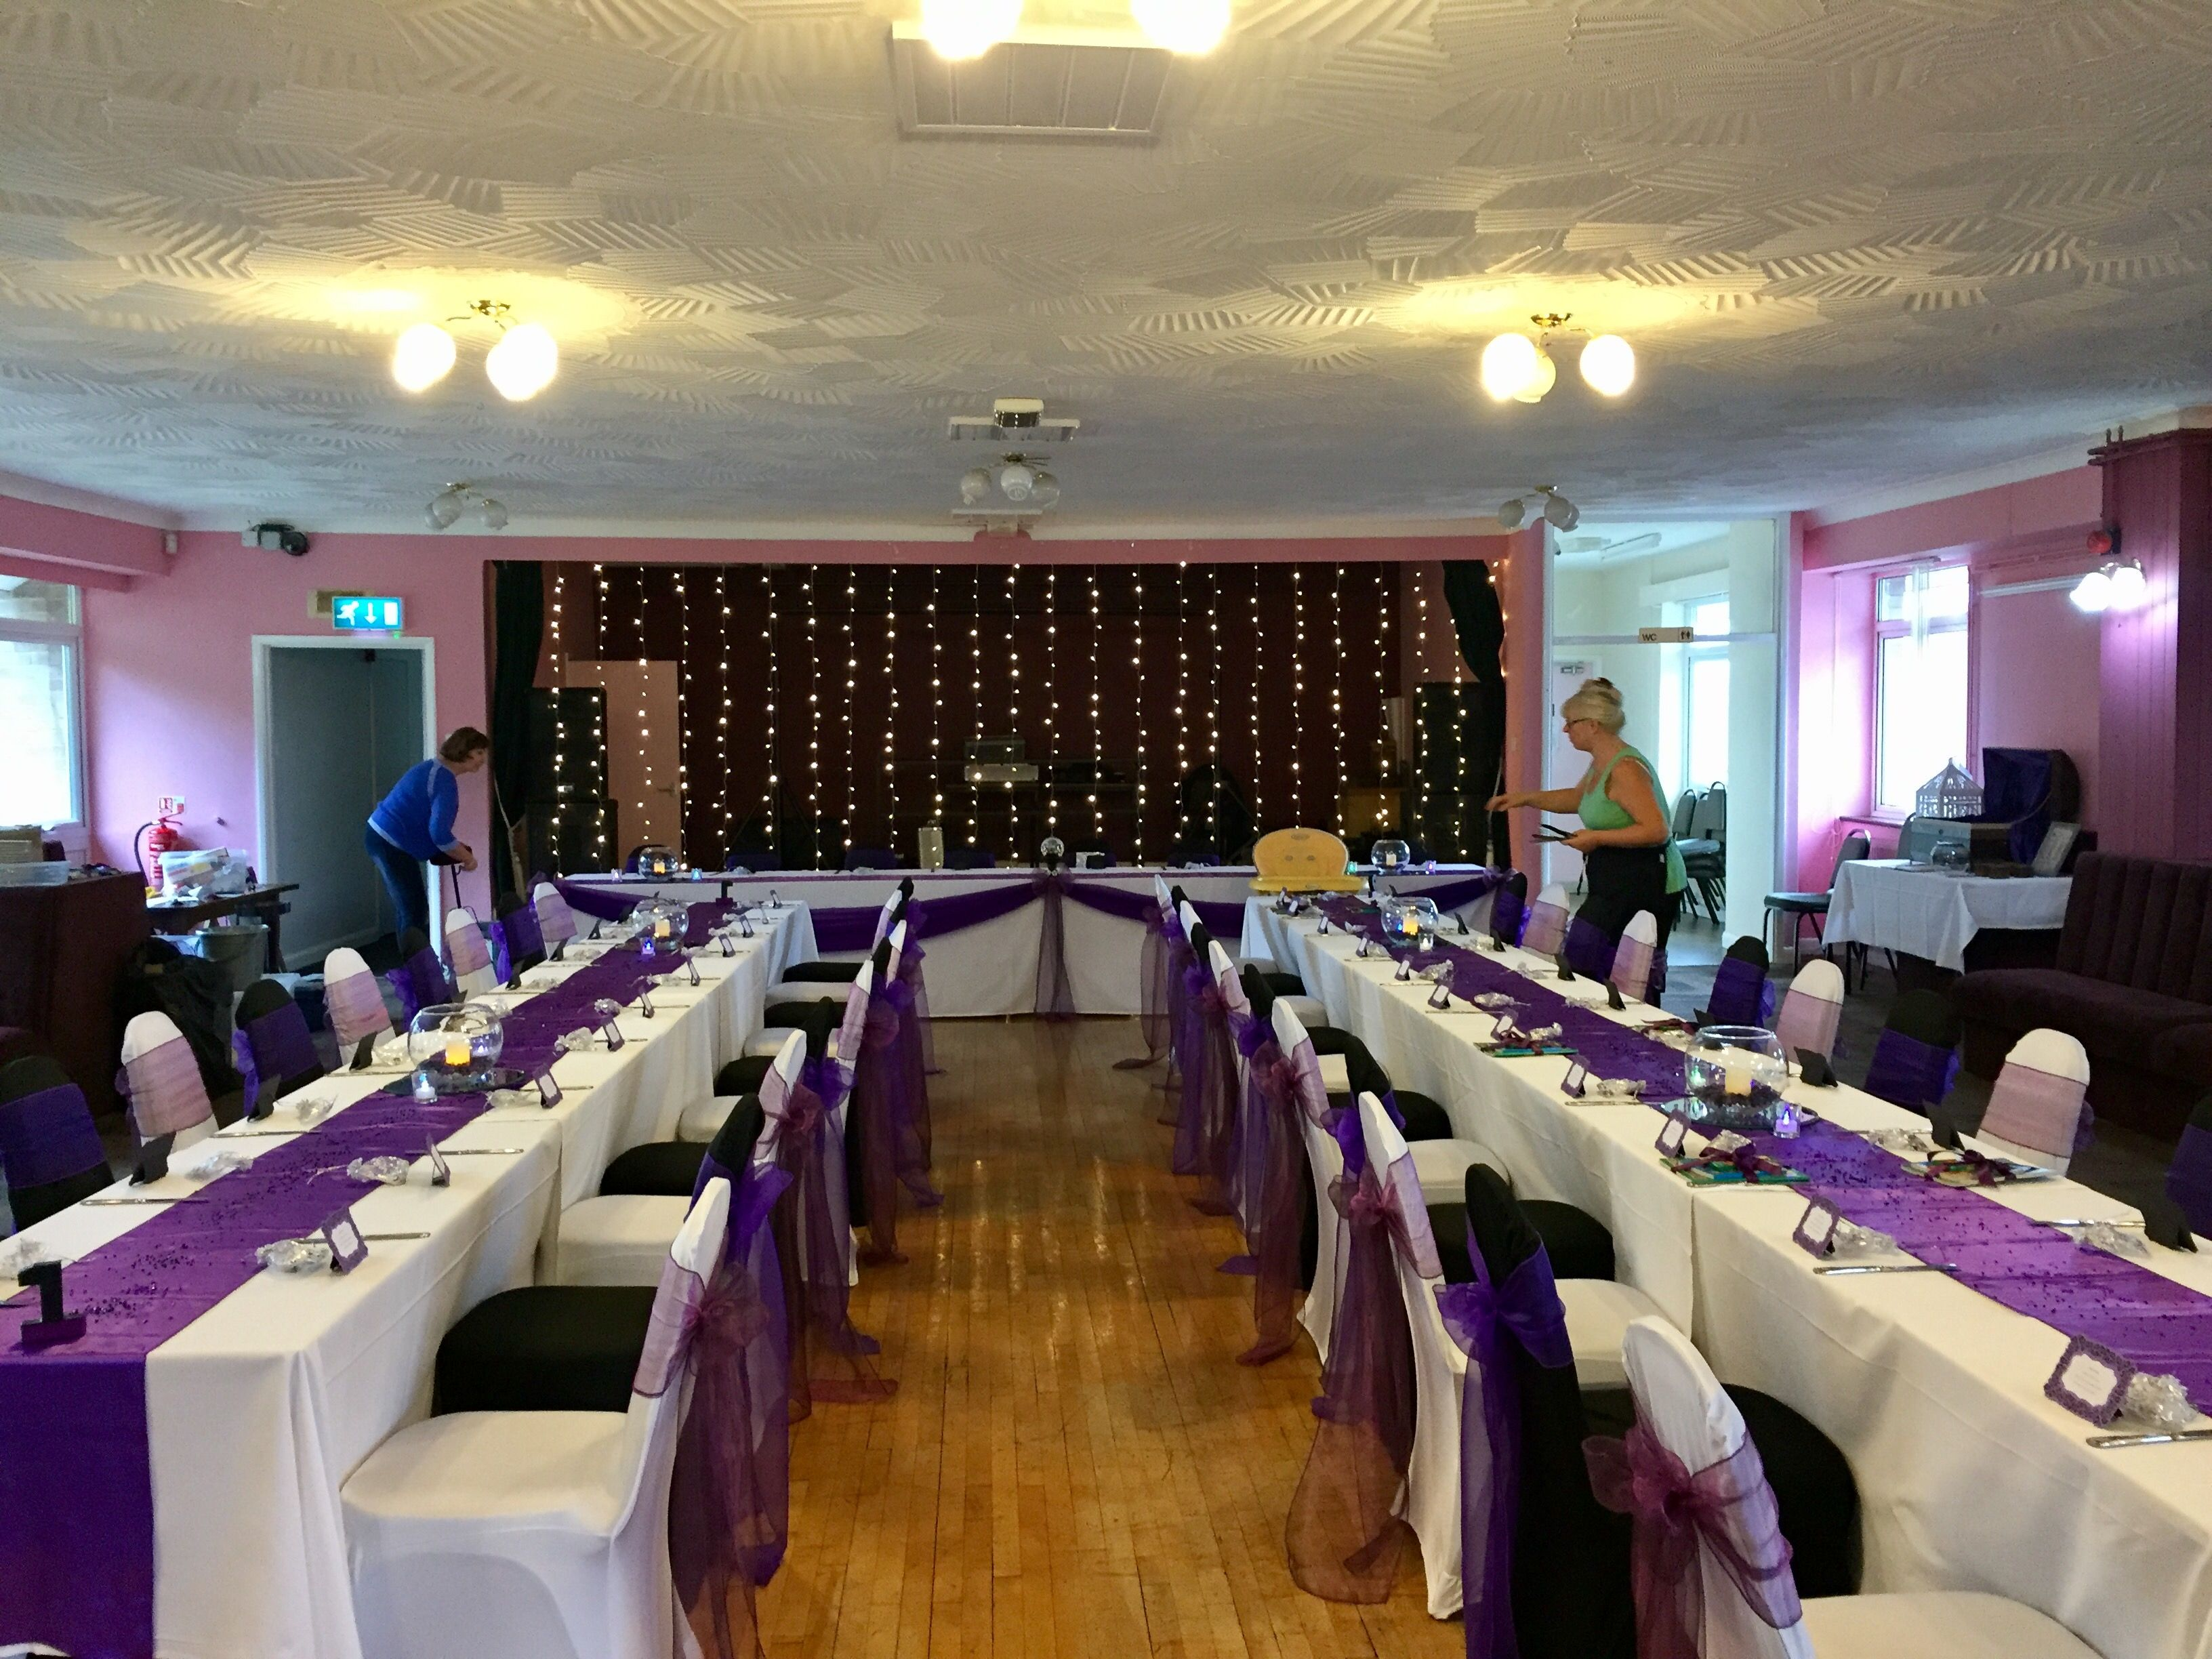 Black and white cover with purple sashes, fishbowl centrepieces and fairy lights.